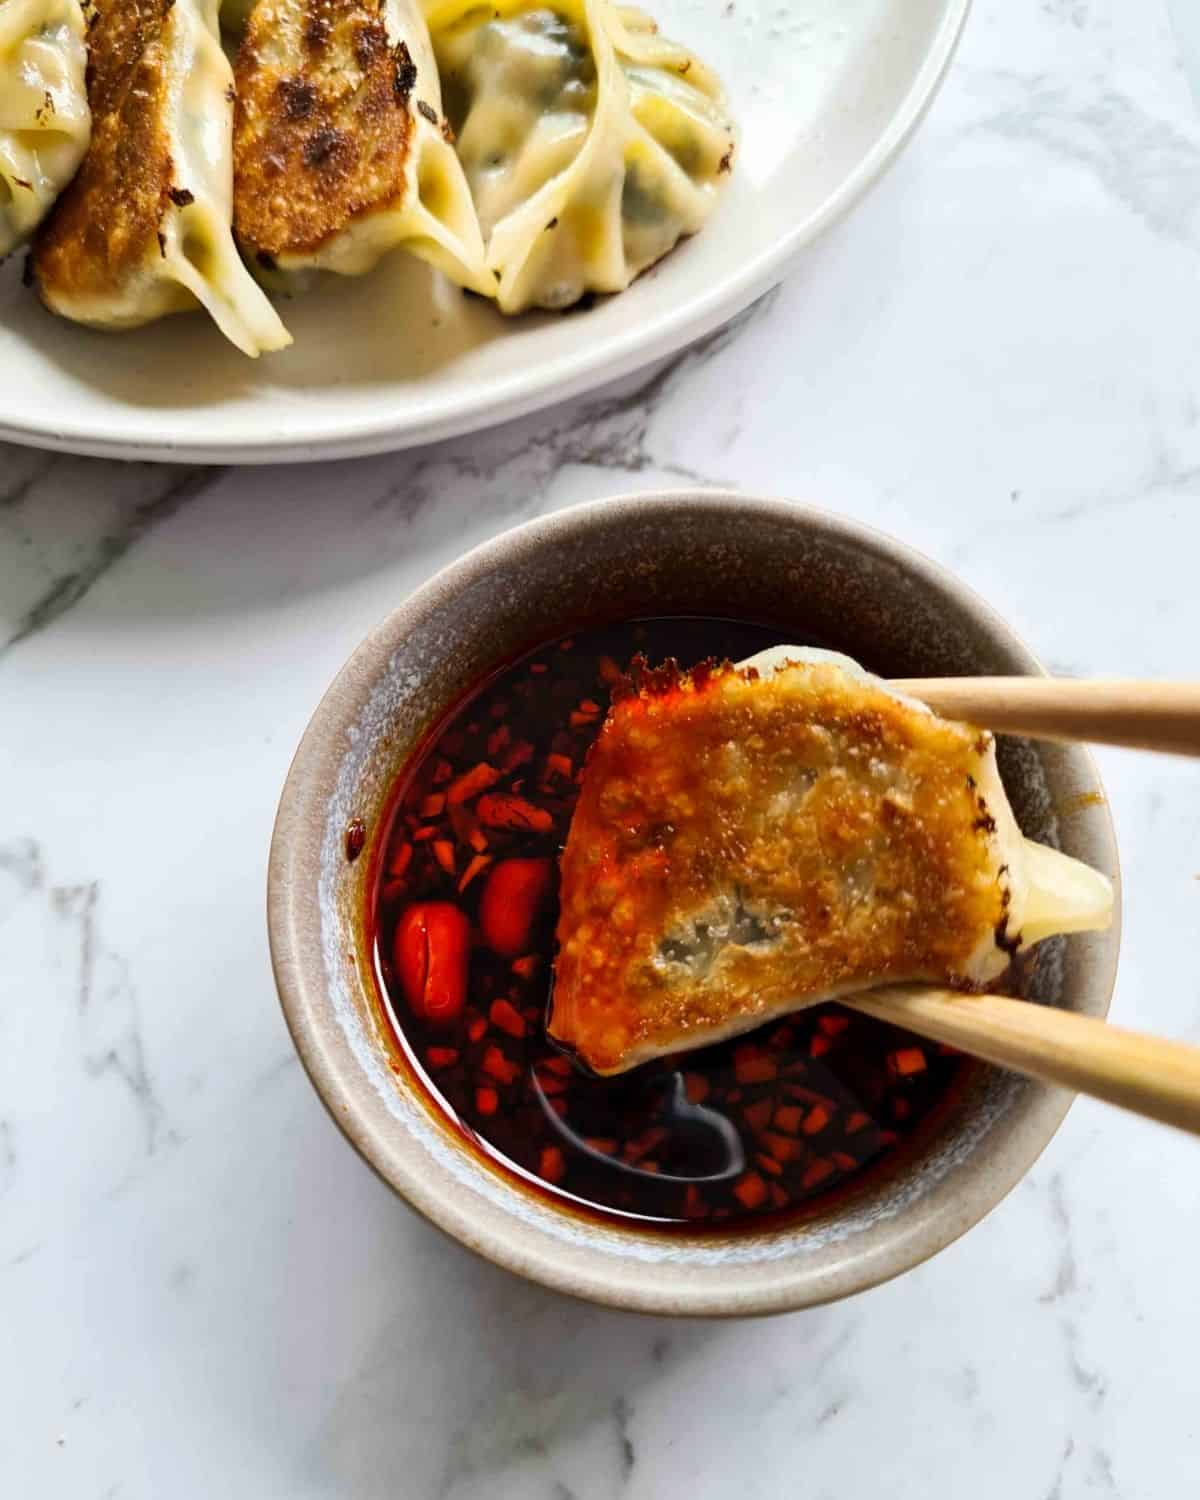 Close up of a potsticker being dipped into a chili oil sauce, held up by a pair of chopsticks